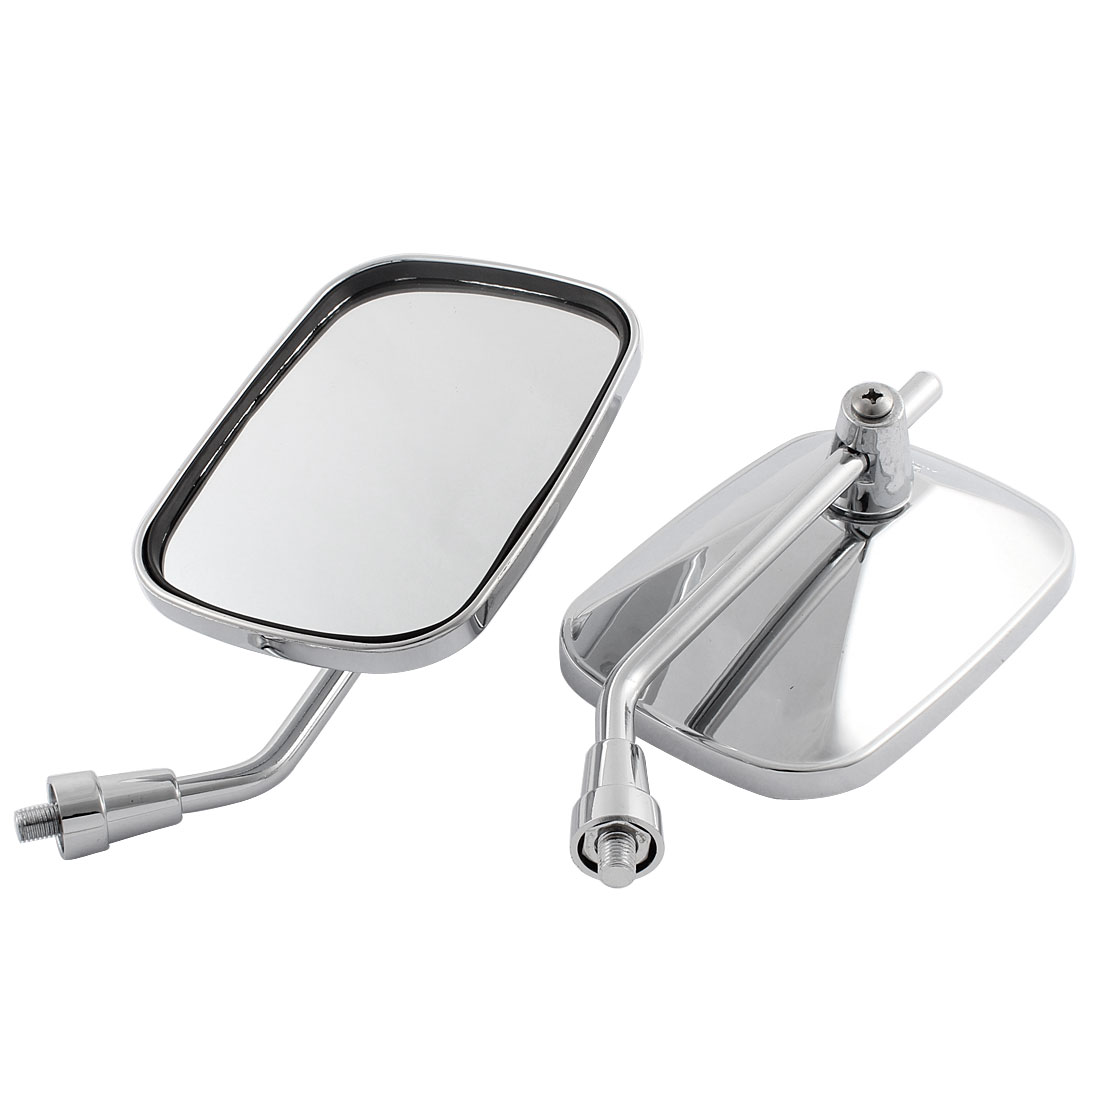 2 Pcs Silver Tone Chrome Wide Angle Blind Spot Rearview Mirror for Motorcycle